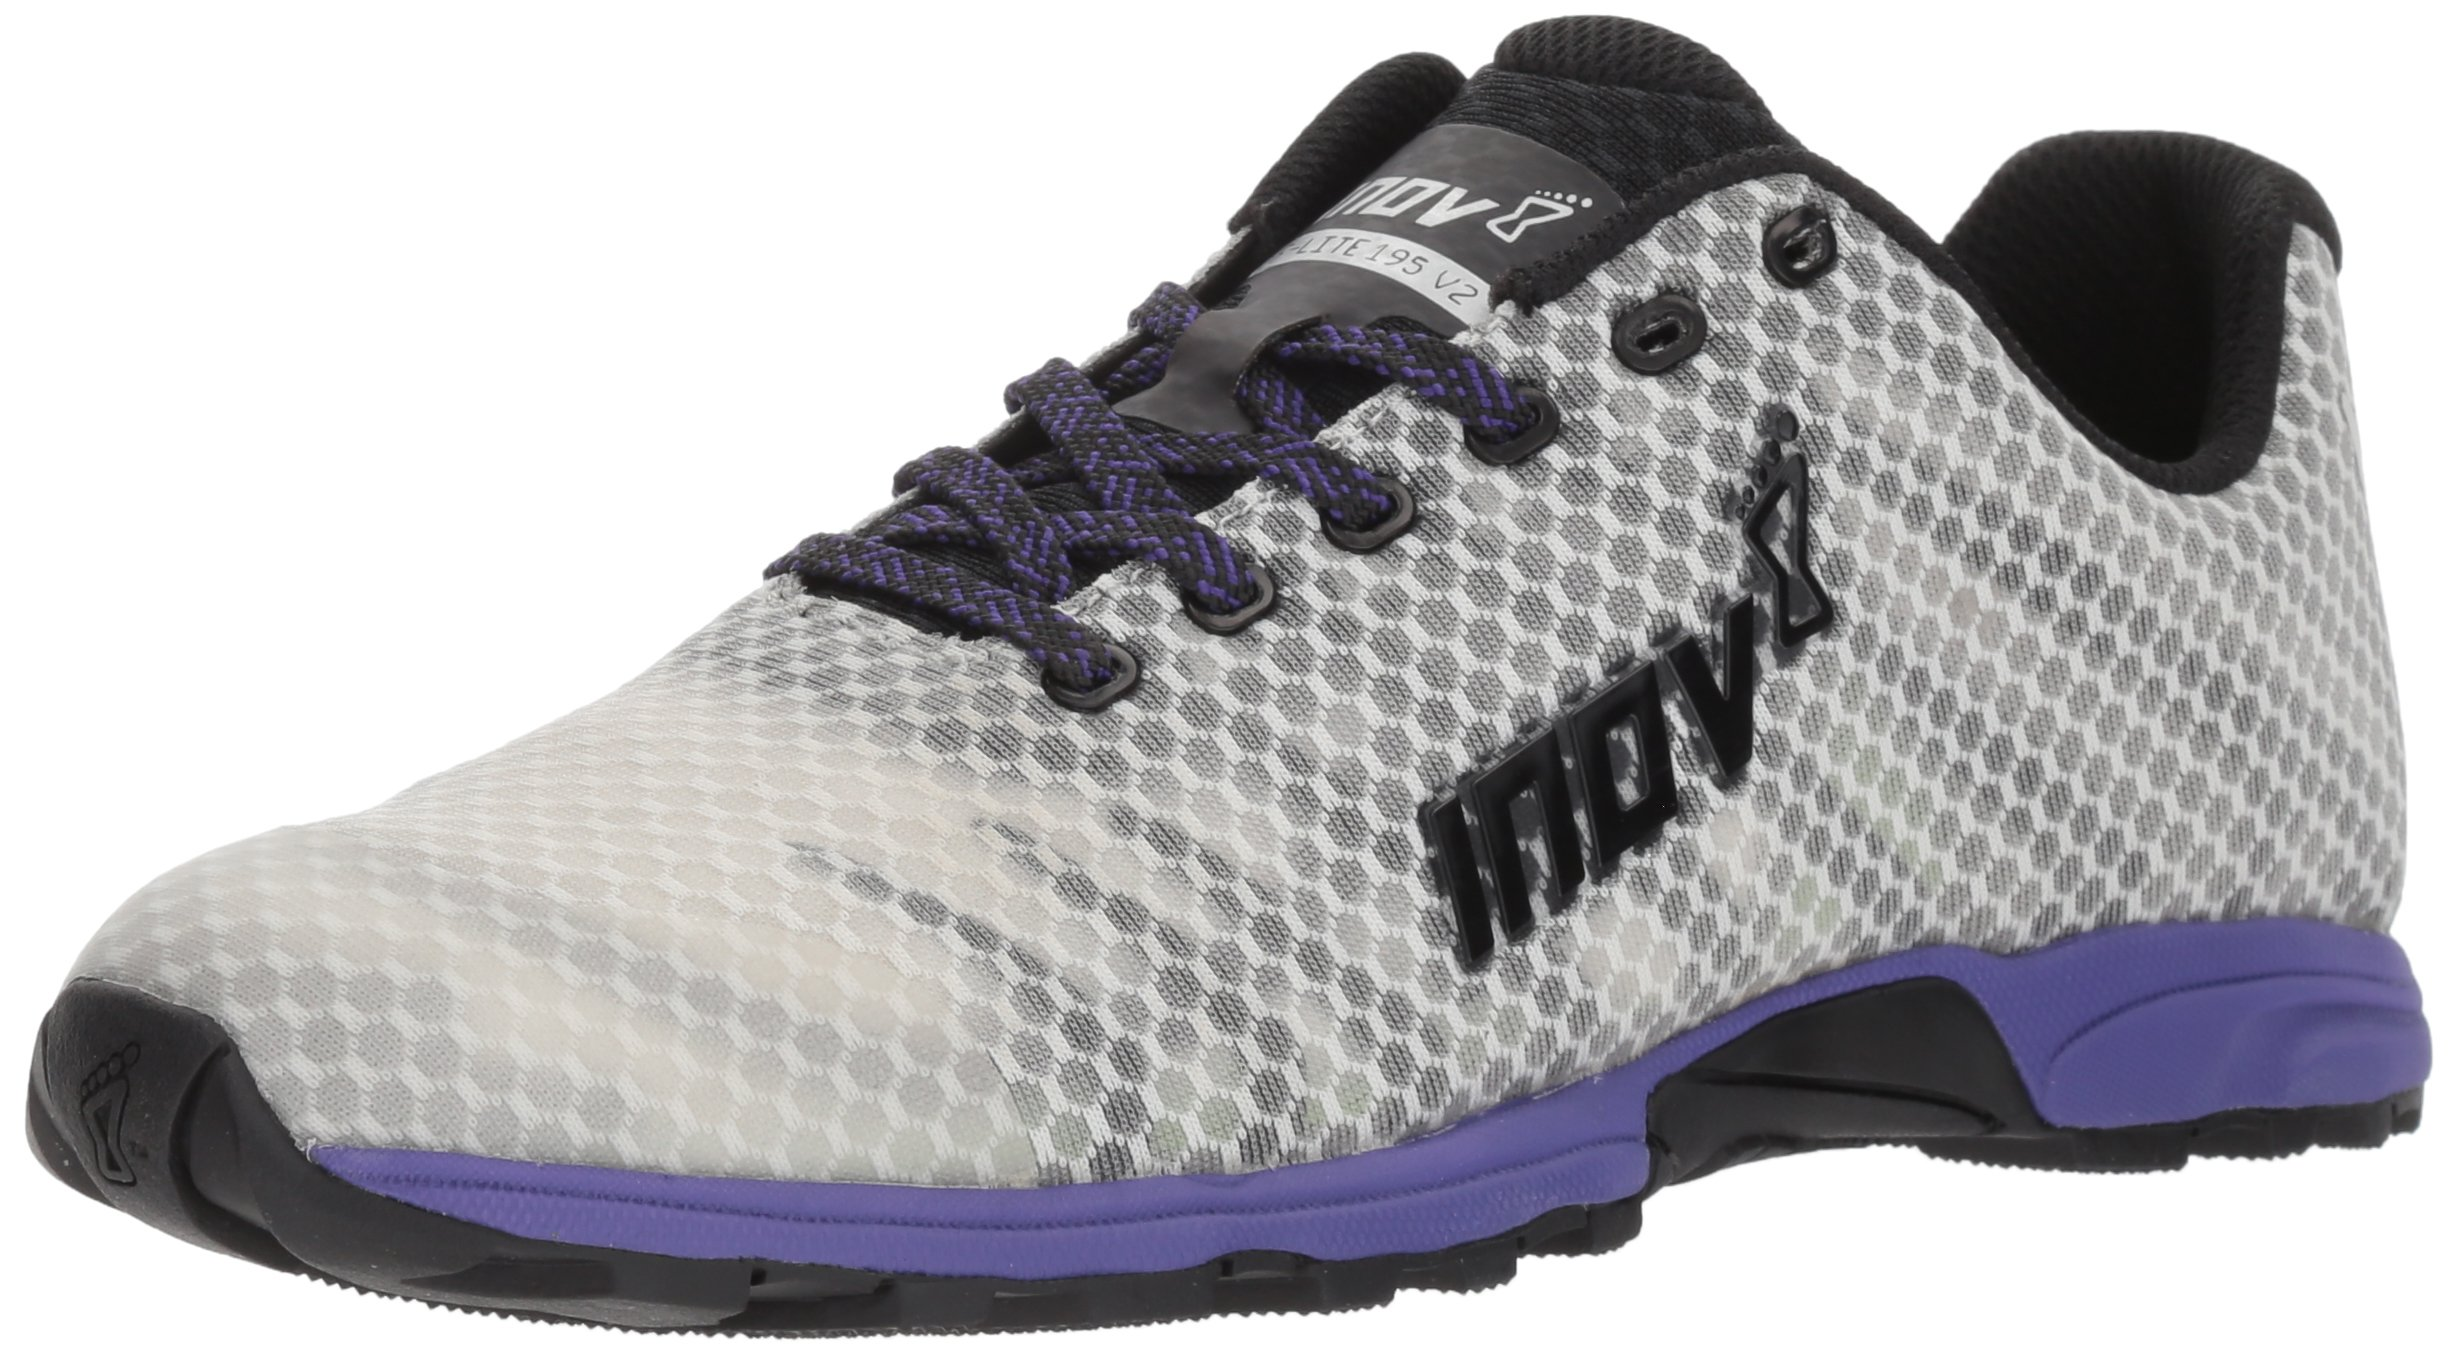 inov-8 Women's F-Lite 195 v2 (W) Cross-Trainer-Shoes, Grey/Purple, 7 a US